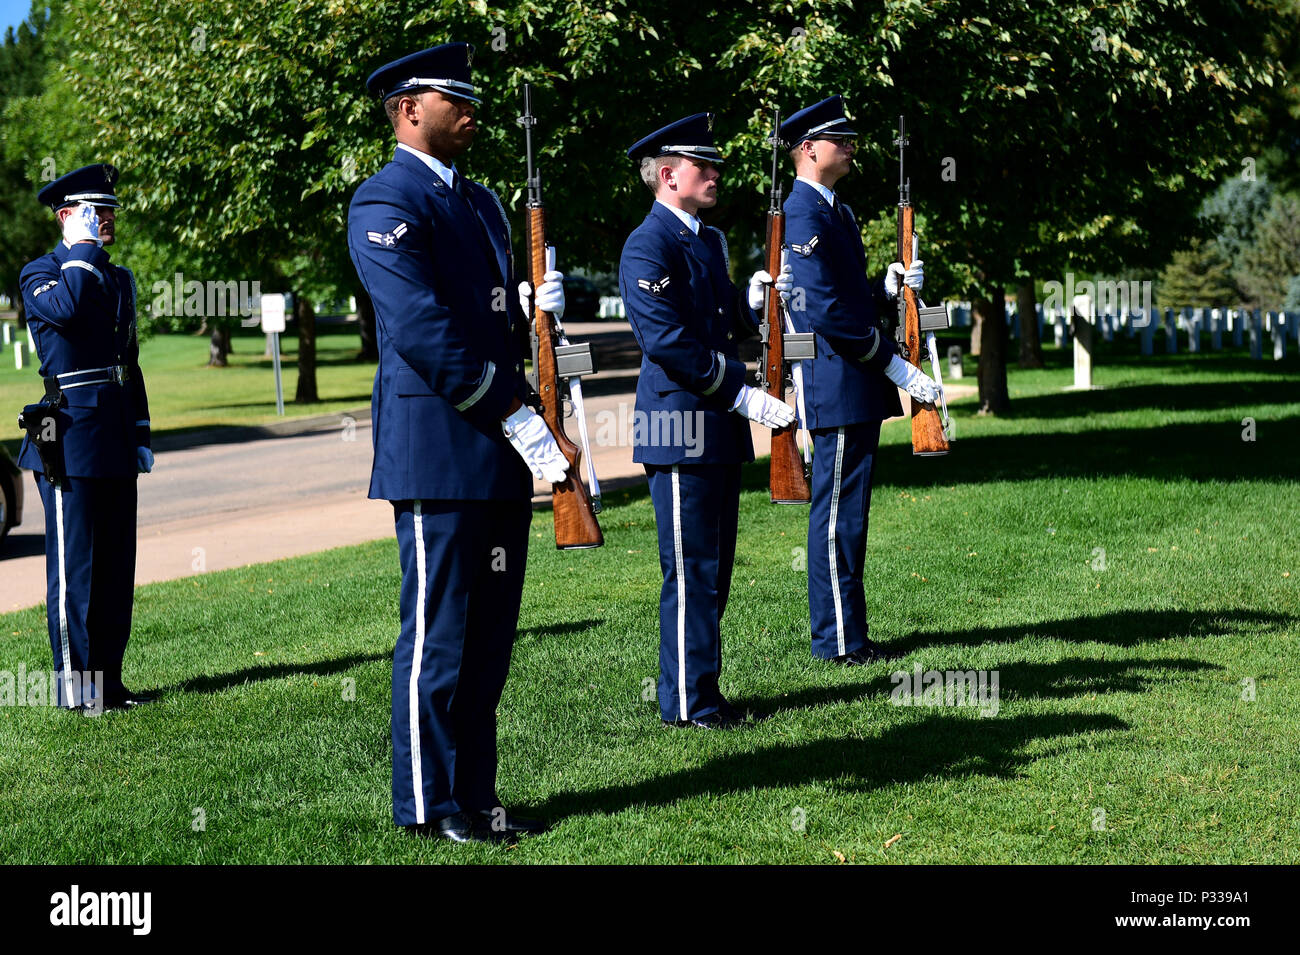 U.S. Air Force Mile High Honor Guard members finish a three volley rifle salute during a funeral August 30, 2016, at Fort Logan National Cemetery, Colo. The three volleys originally indicated that casualties had been cared for during combat, but over time they have become known as honoring the fallen. (U.S. Air Force photo by Airman 1st Class Gabrielle Spradling/Released) - Stock Image